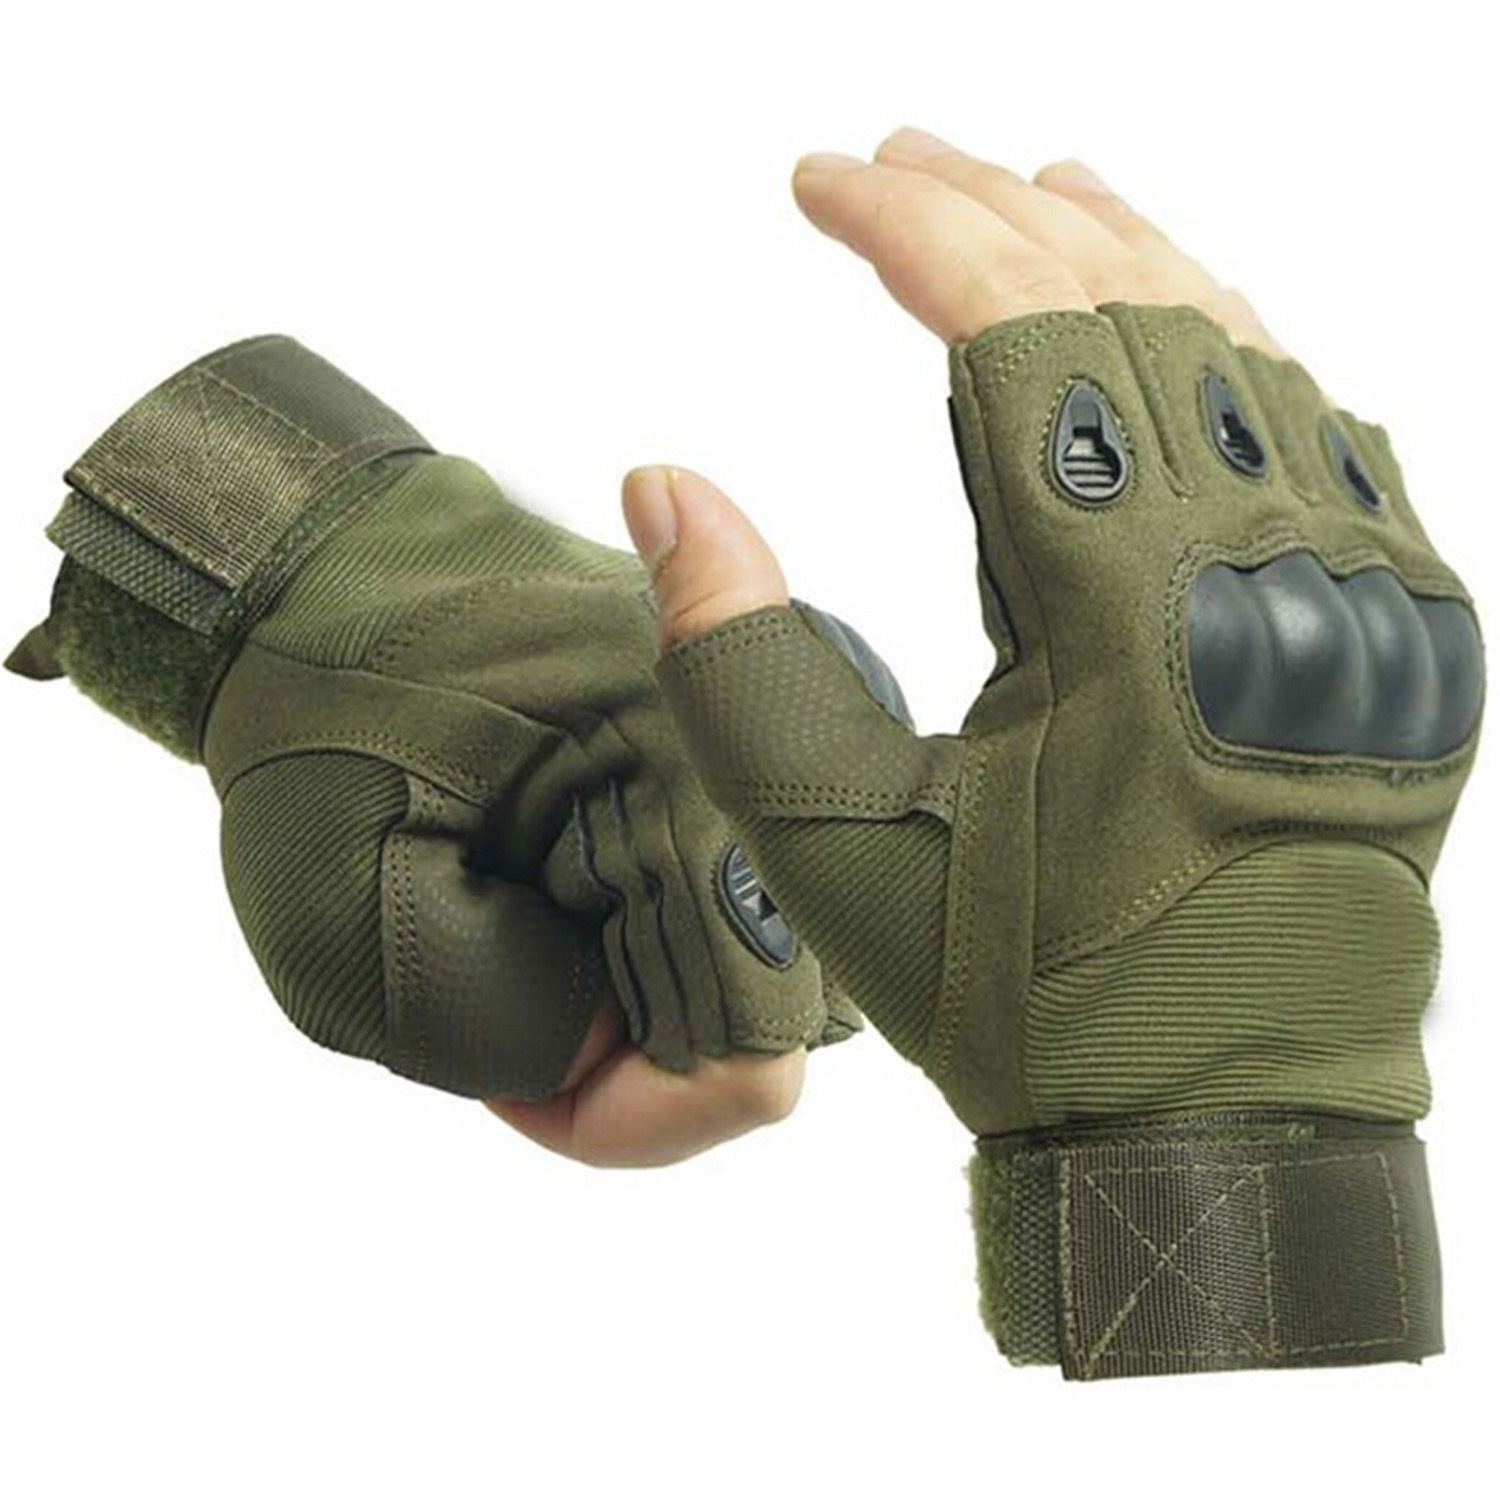 Fingerless gloves hunting - Vococal Outdoor Hunting Cycling Motorcycle Driving Tactical Fingerless Gloves Xl Army Green Lazada Ph